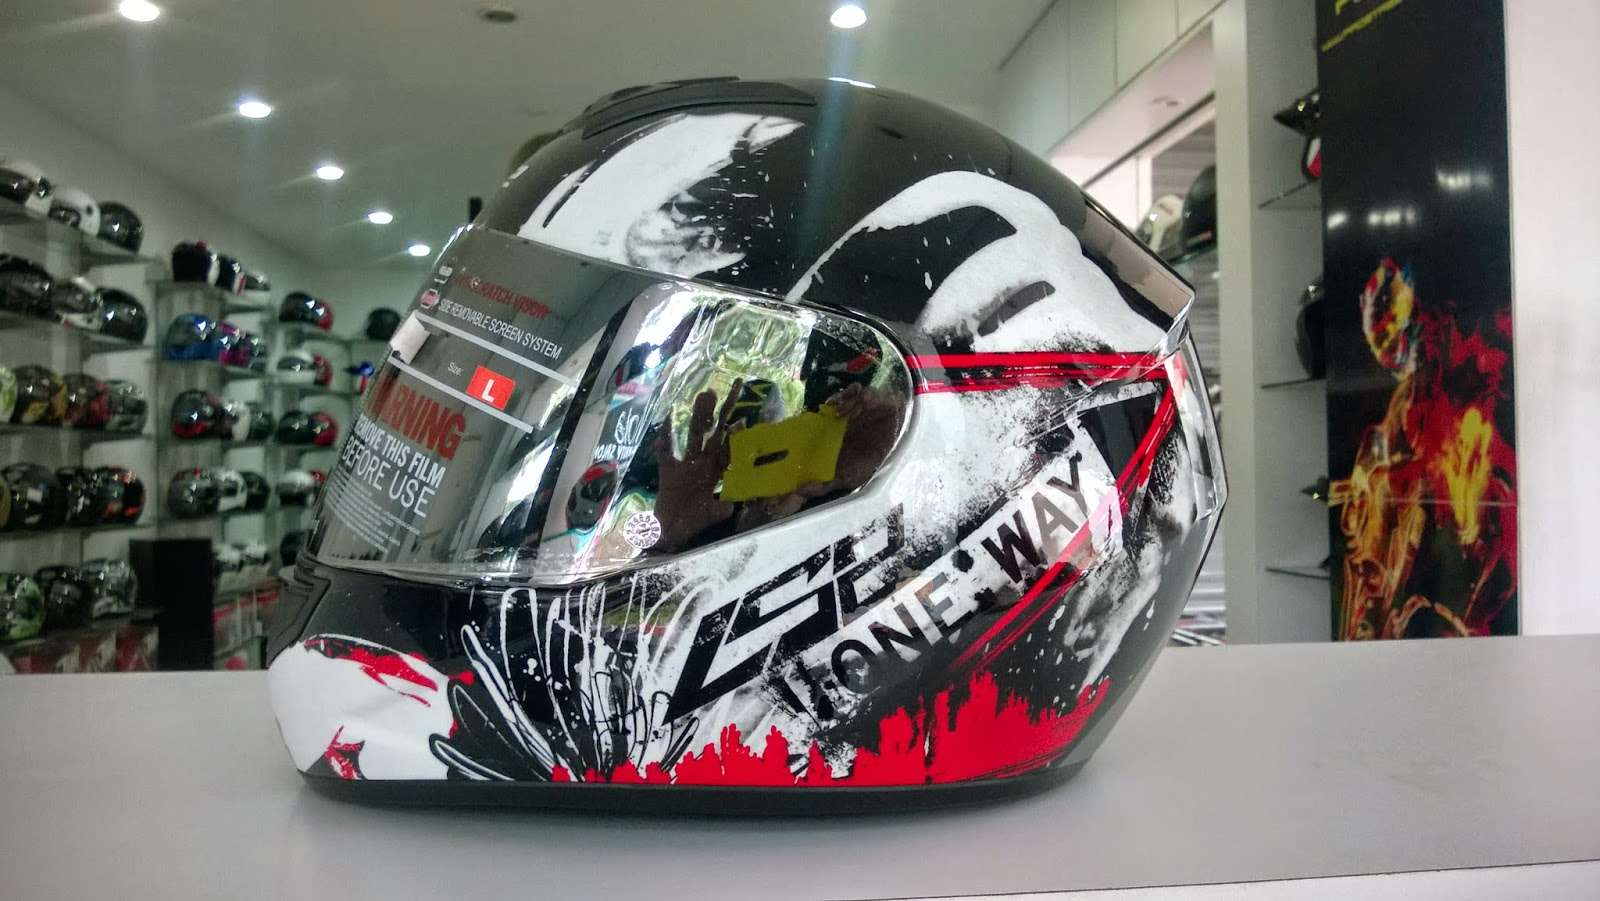 501e24c4 The lid is the same as the earlier LS2 FF350/FF351 models .Made with High  impact thermo plastic as LS2 calls it, the helmet shell seems solid .